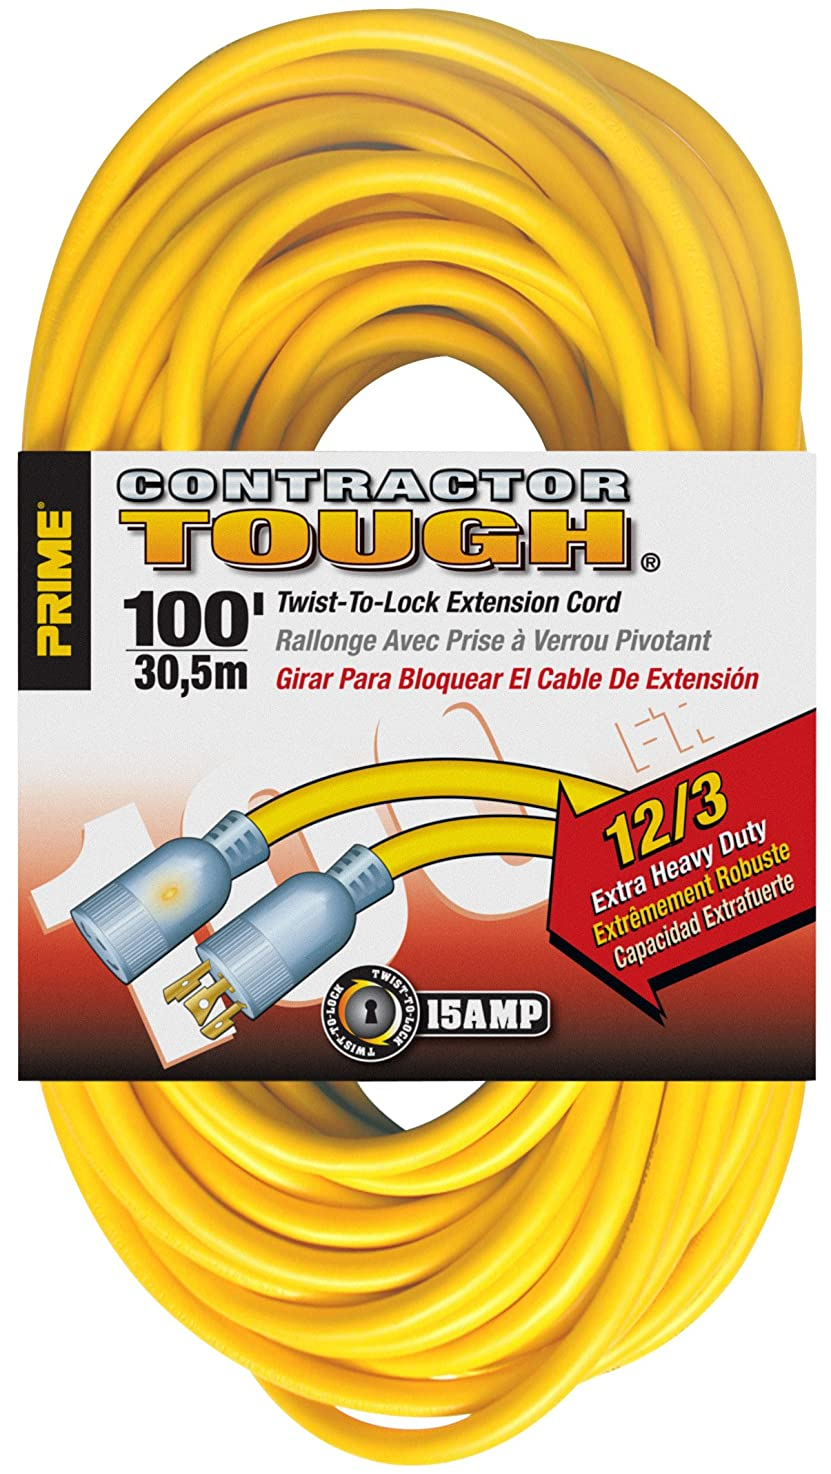 Prime Wire & Cable EC730835 100-Foot 12/3 SJTW Twist -to-Lock Contractor Outdoor Extension Cord with Prime light Indicator Light, Yellow